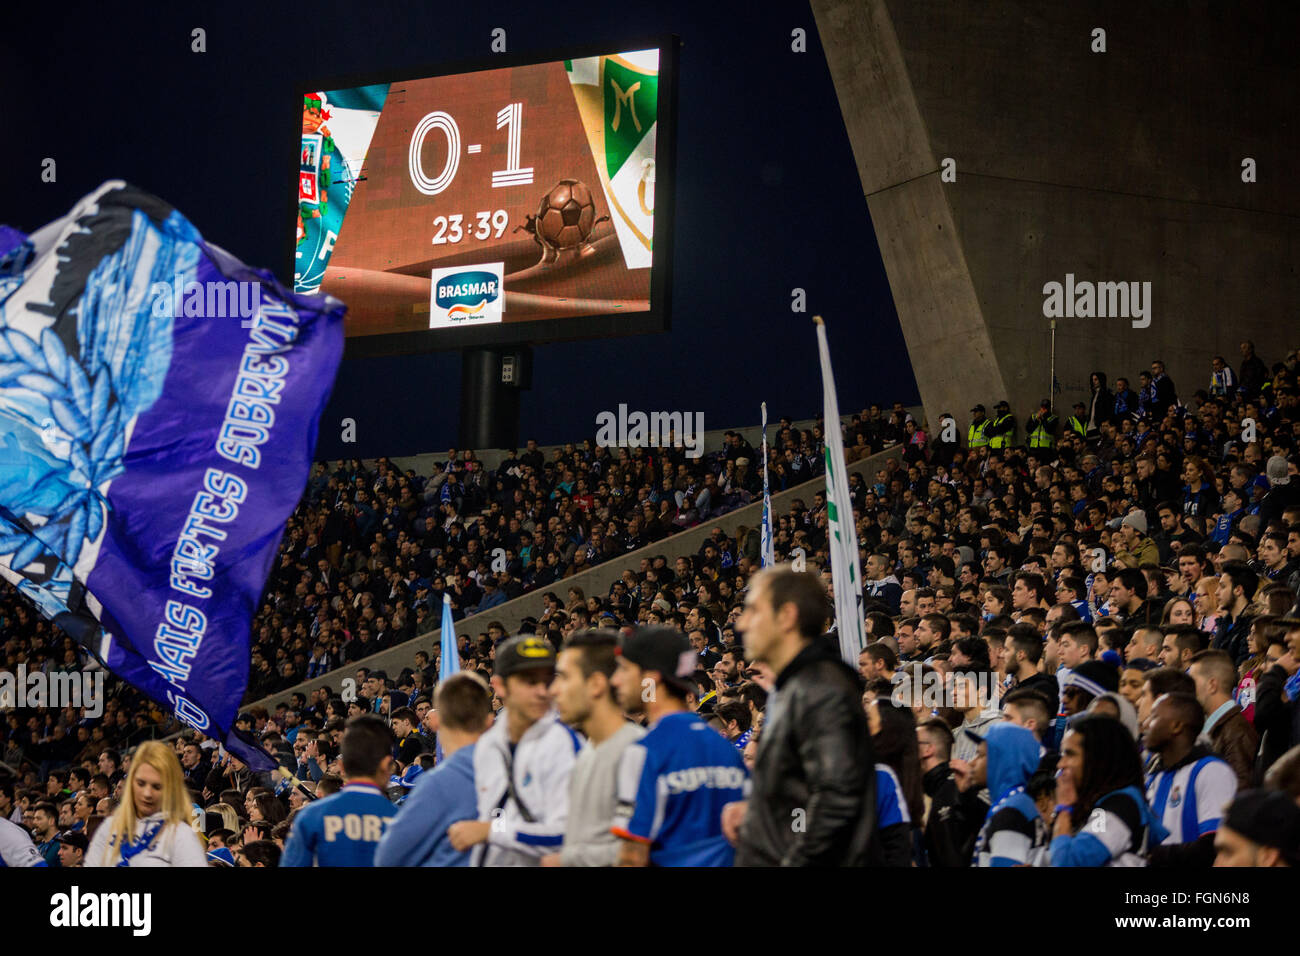 Dragon Stadium, Portugal. 21st February, 2016. FC Porto's player fans during the Premier League 2015/16 match - Stock Image